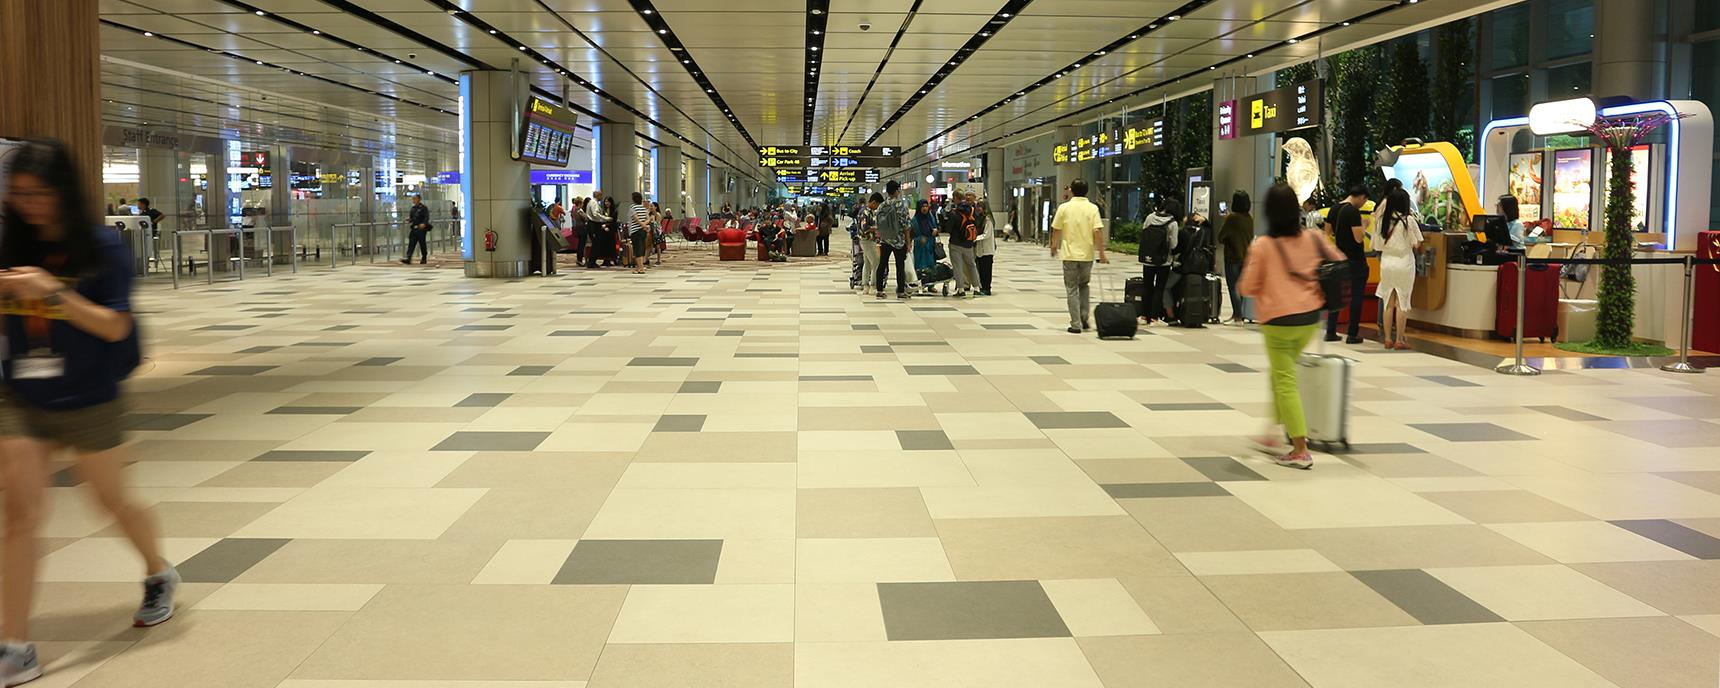 Panaria Ceramica's surfaces cover the spaces of Singapore-Changi Airport